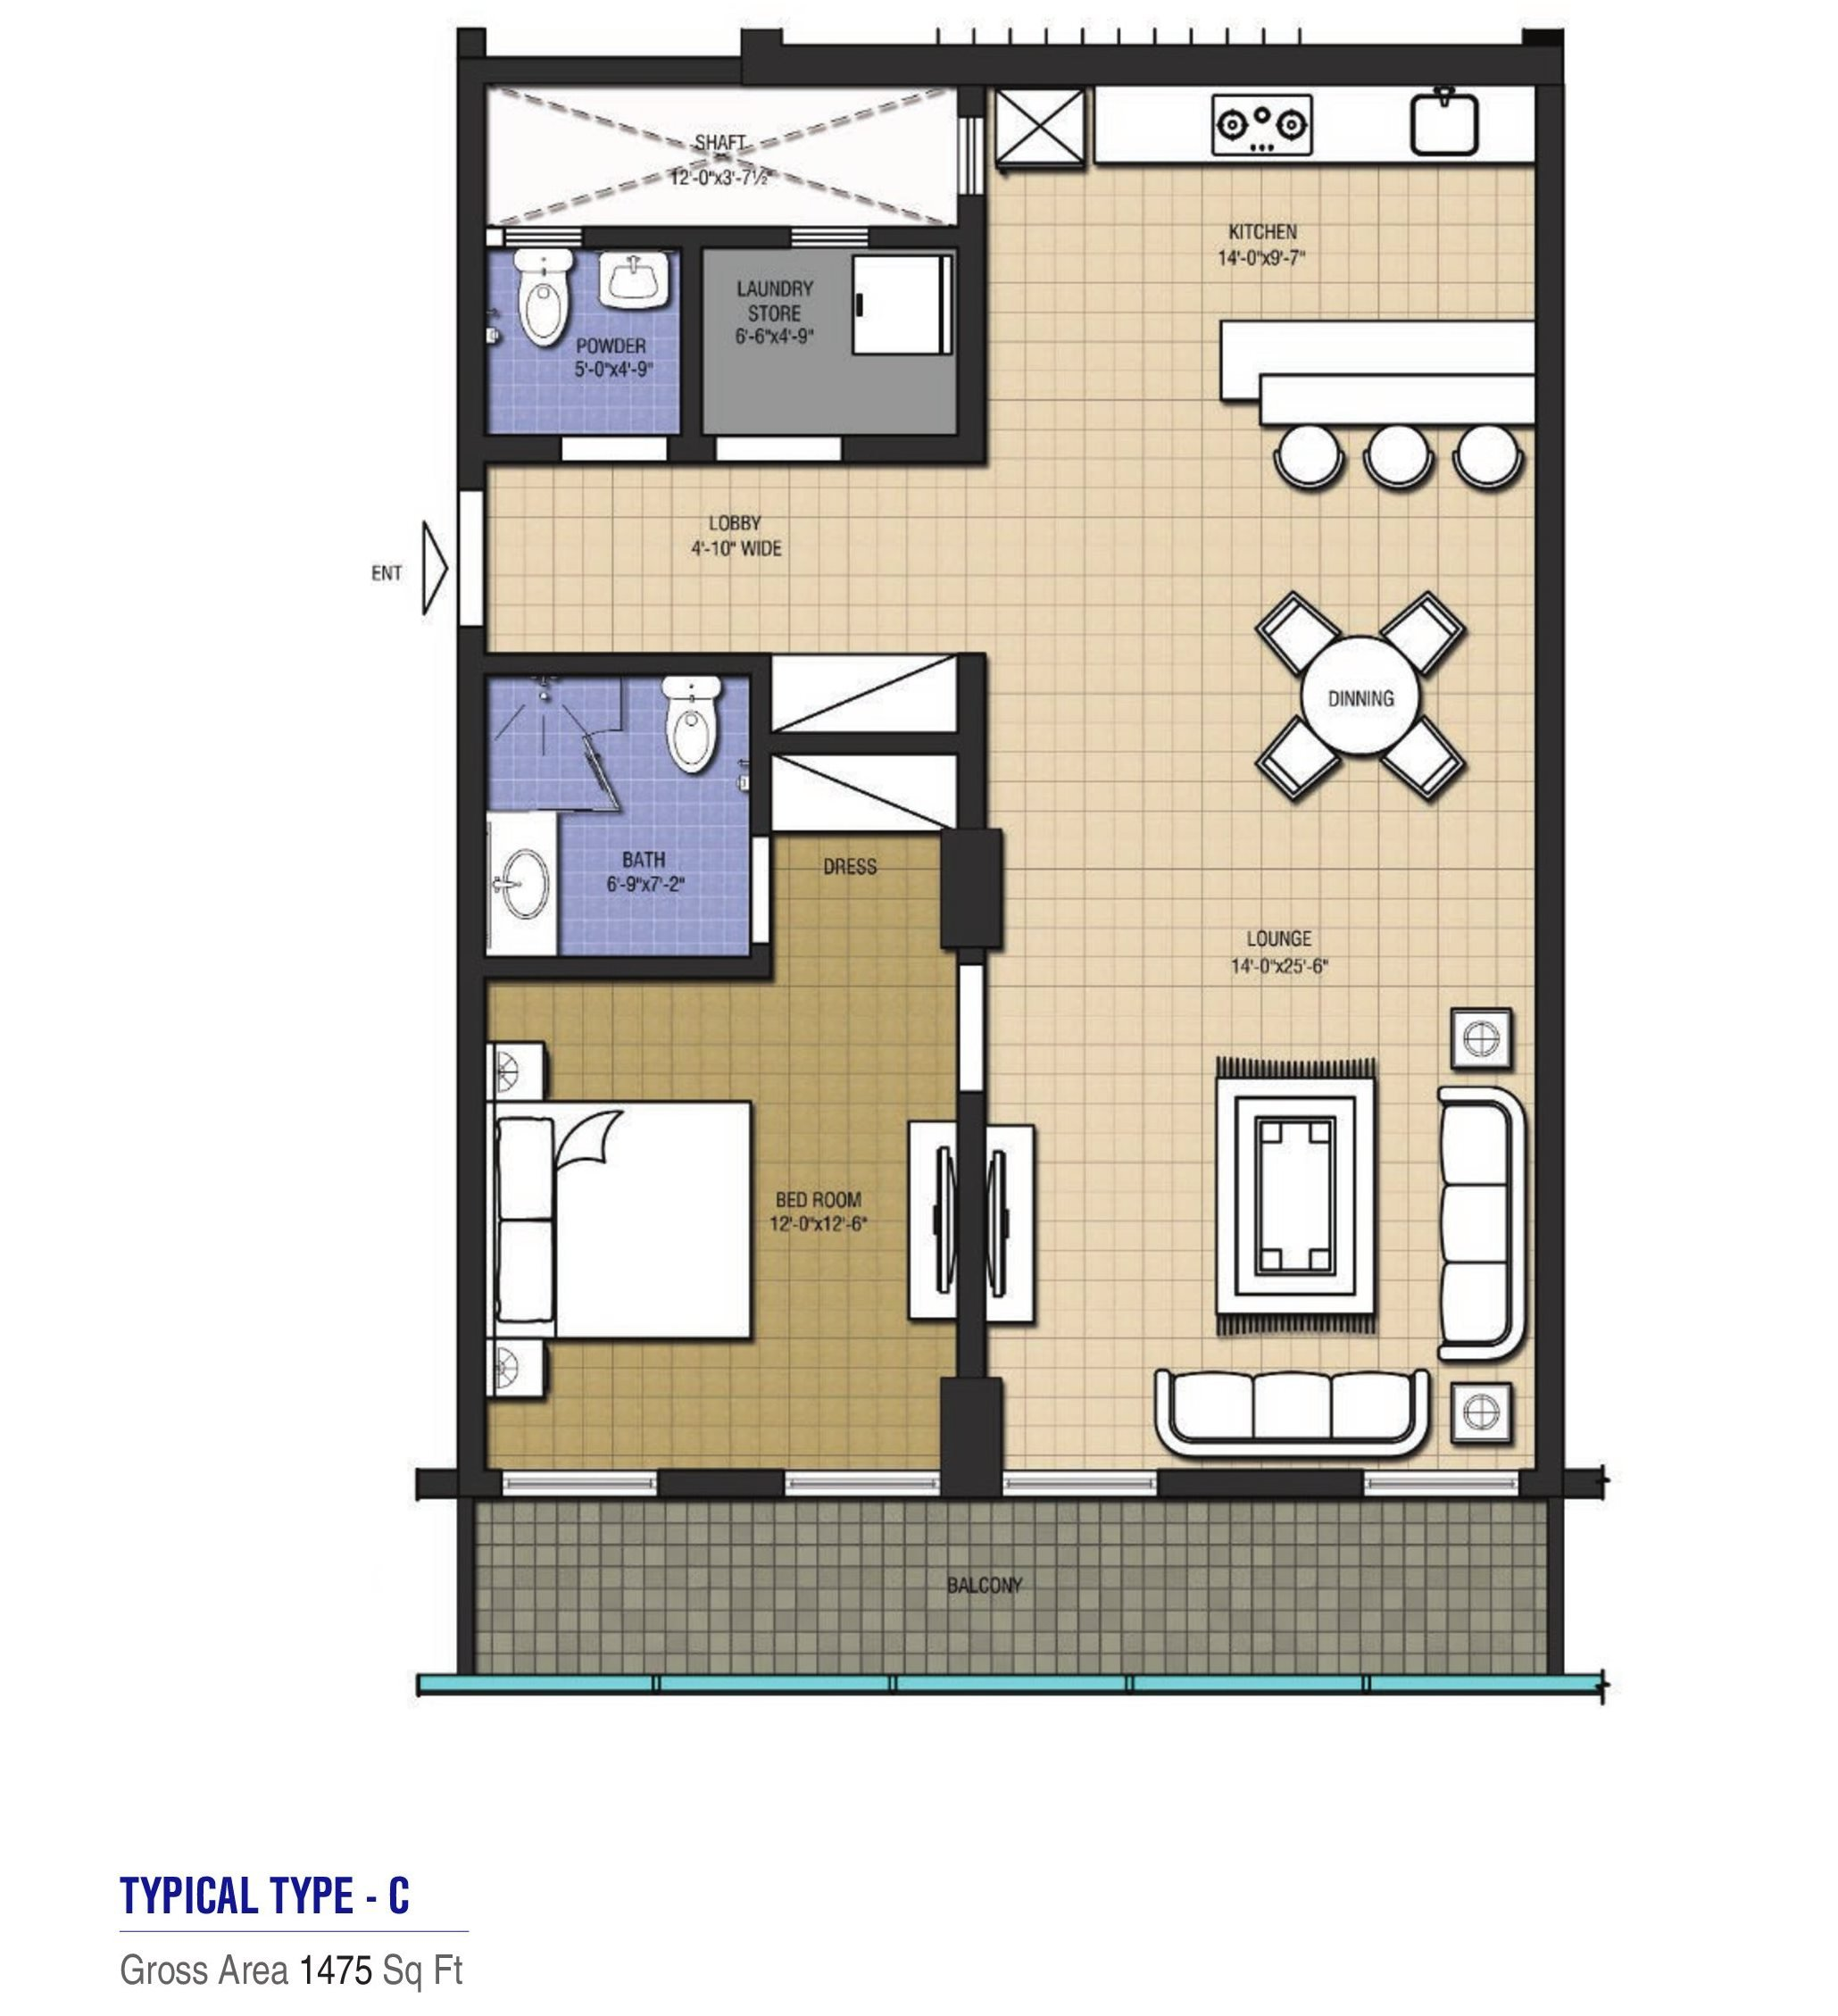 Goldcrest Highlife Grand - 1 bed apartment - type c